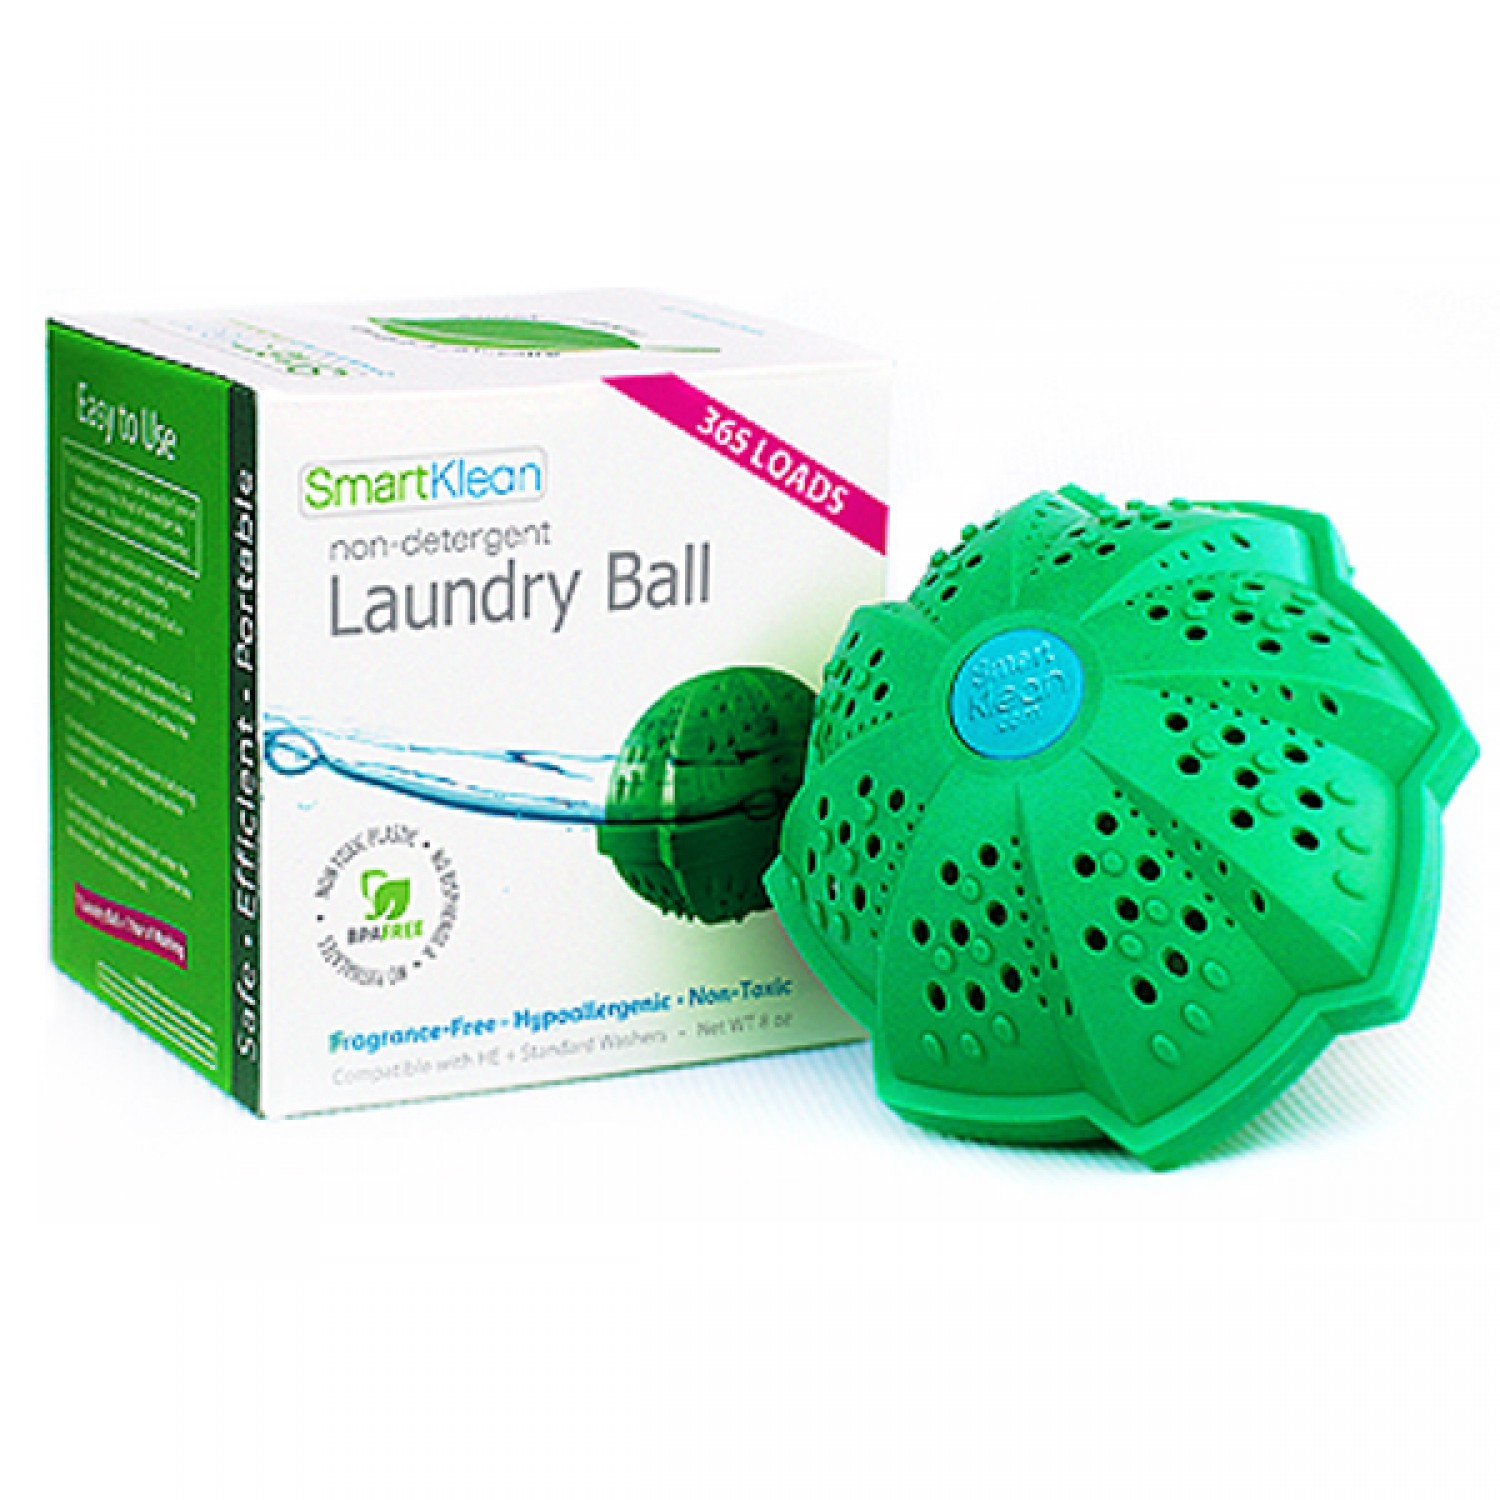 Laundry Ball SmartKlean – round washing miracle